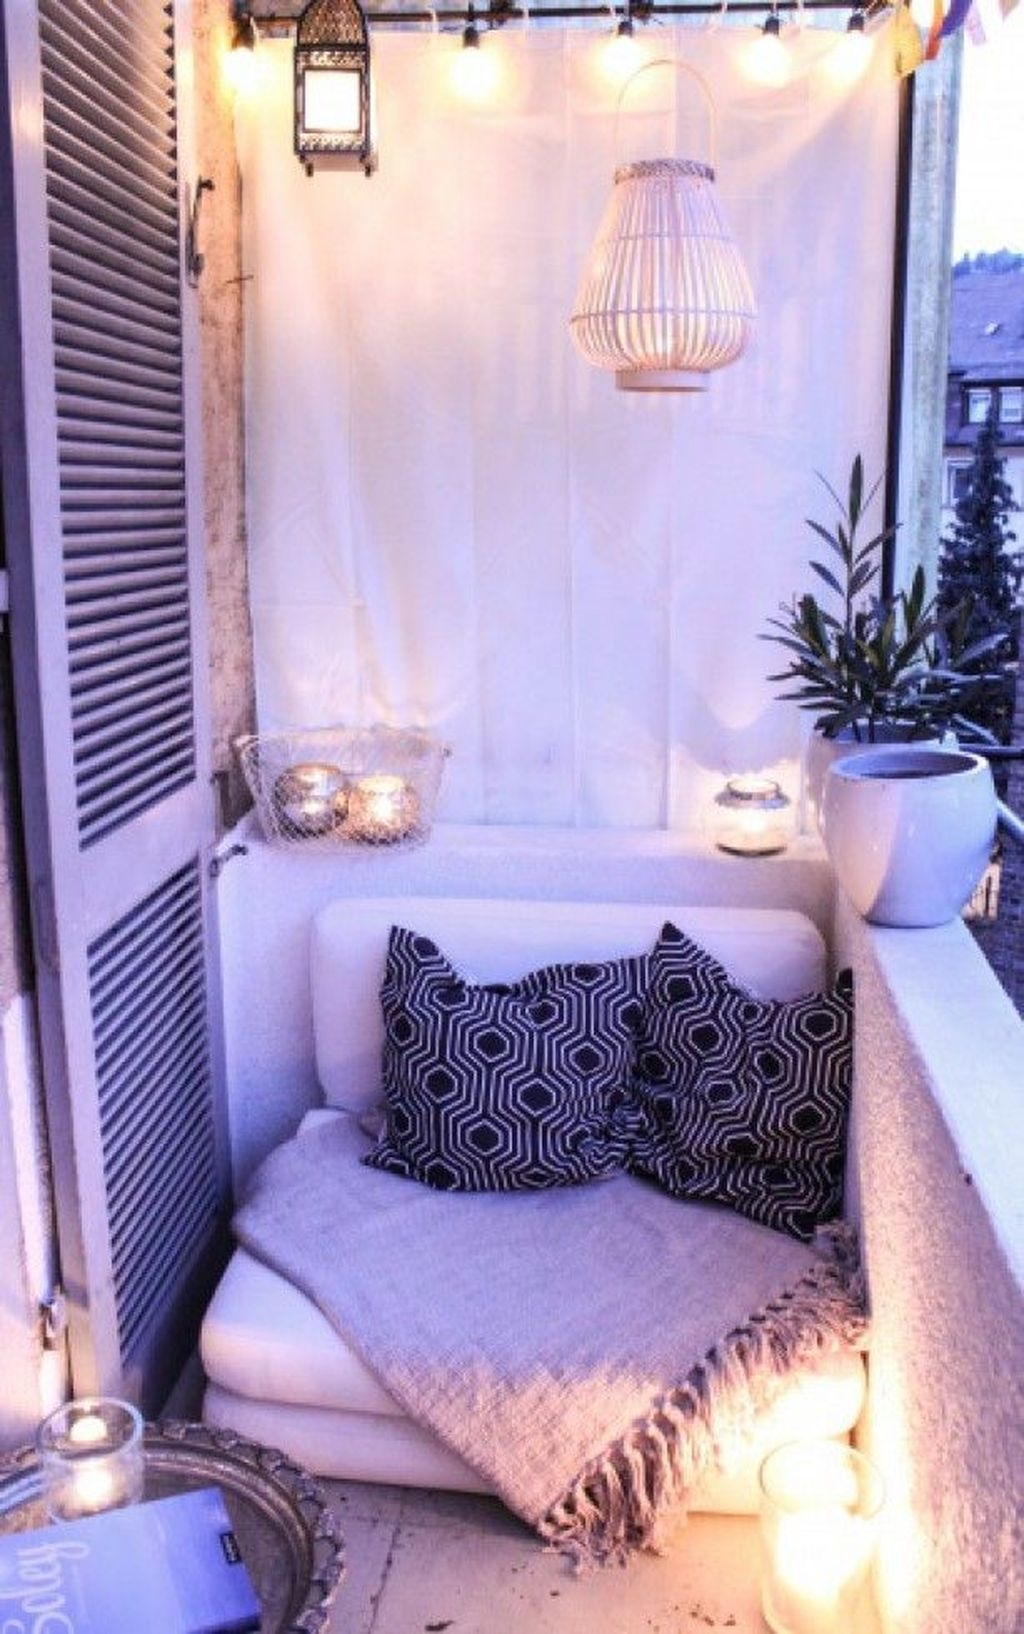 Popular Apartment Balcony Design For Small Spaces 21